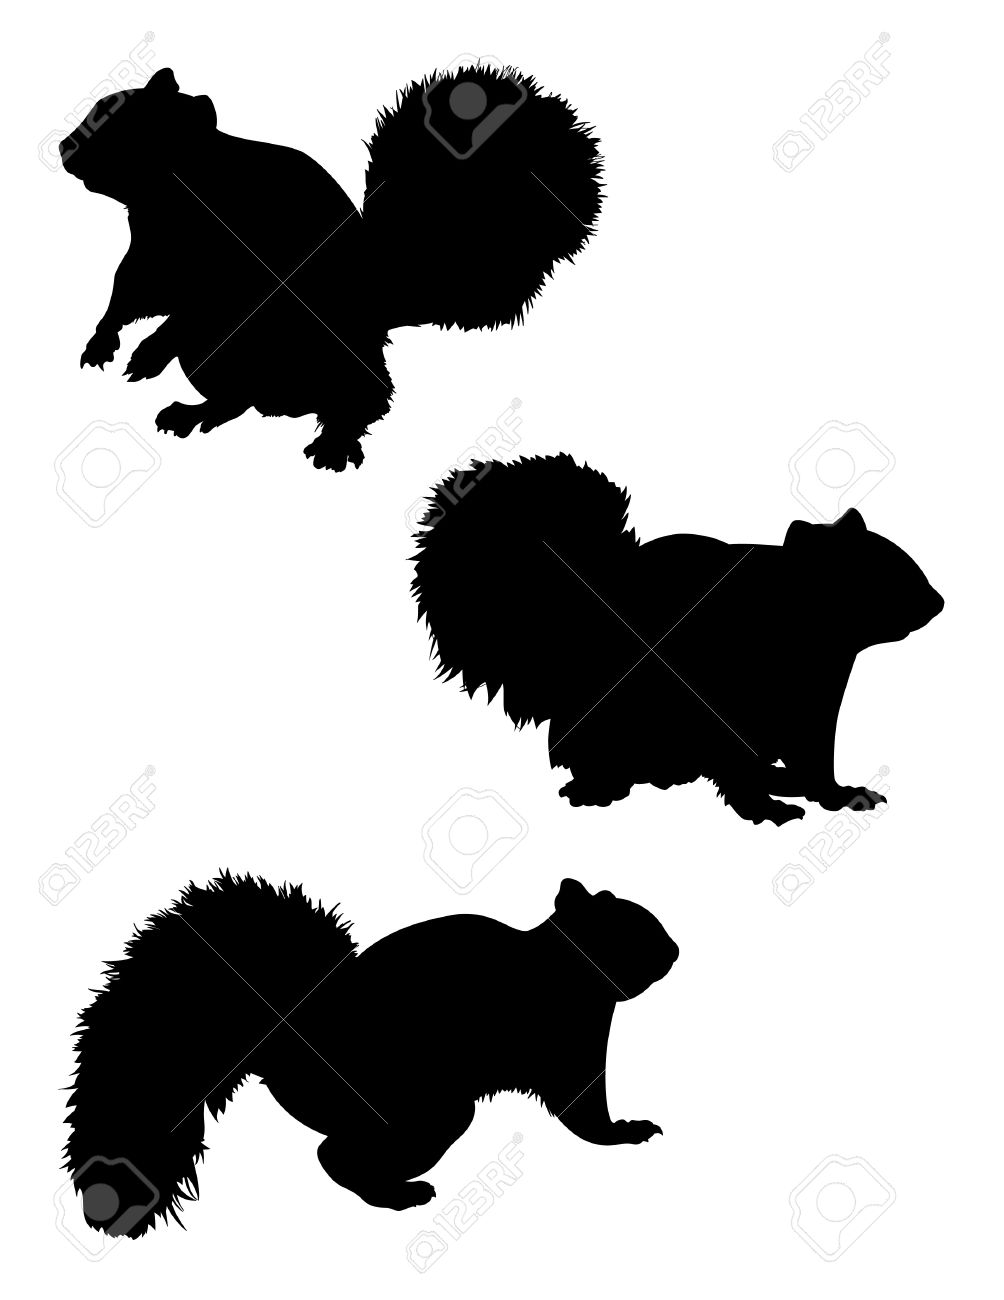 squirrel silhouette images  stock pictures royalty free squirrel  - squirrel silhouette vector squirrel silhouette